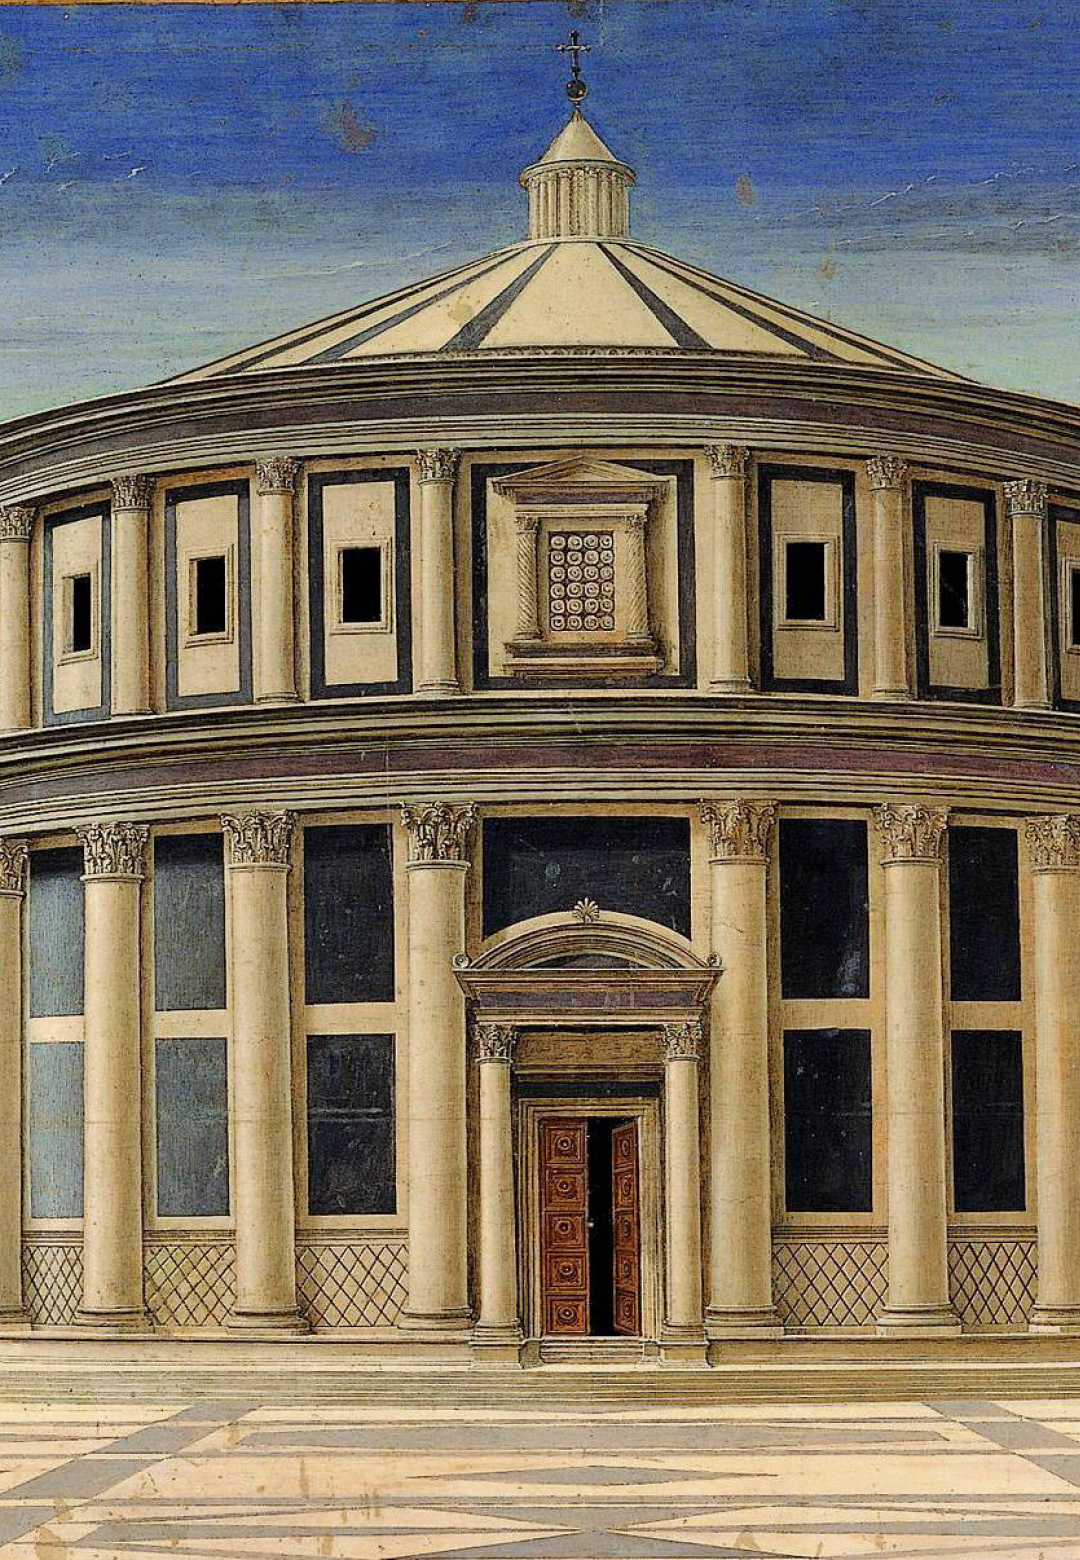 The Ideal City by Piero della Francesca(attributed), 1470 | Human within the Architect | Prem Chandavarkar | STIR